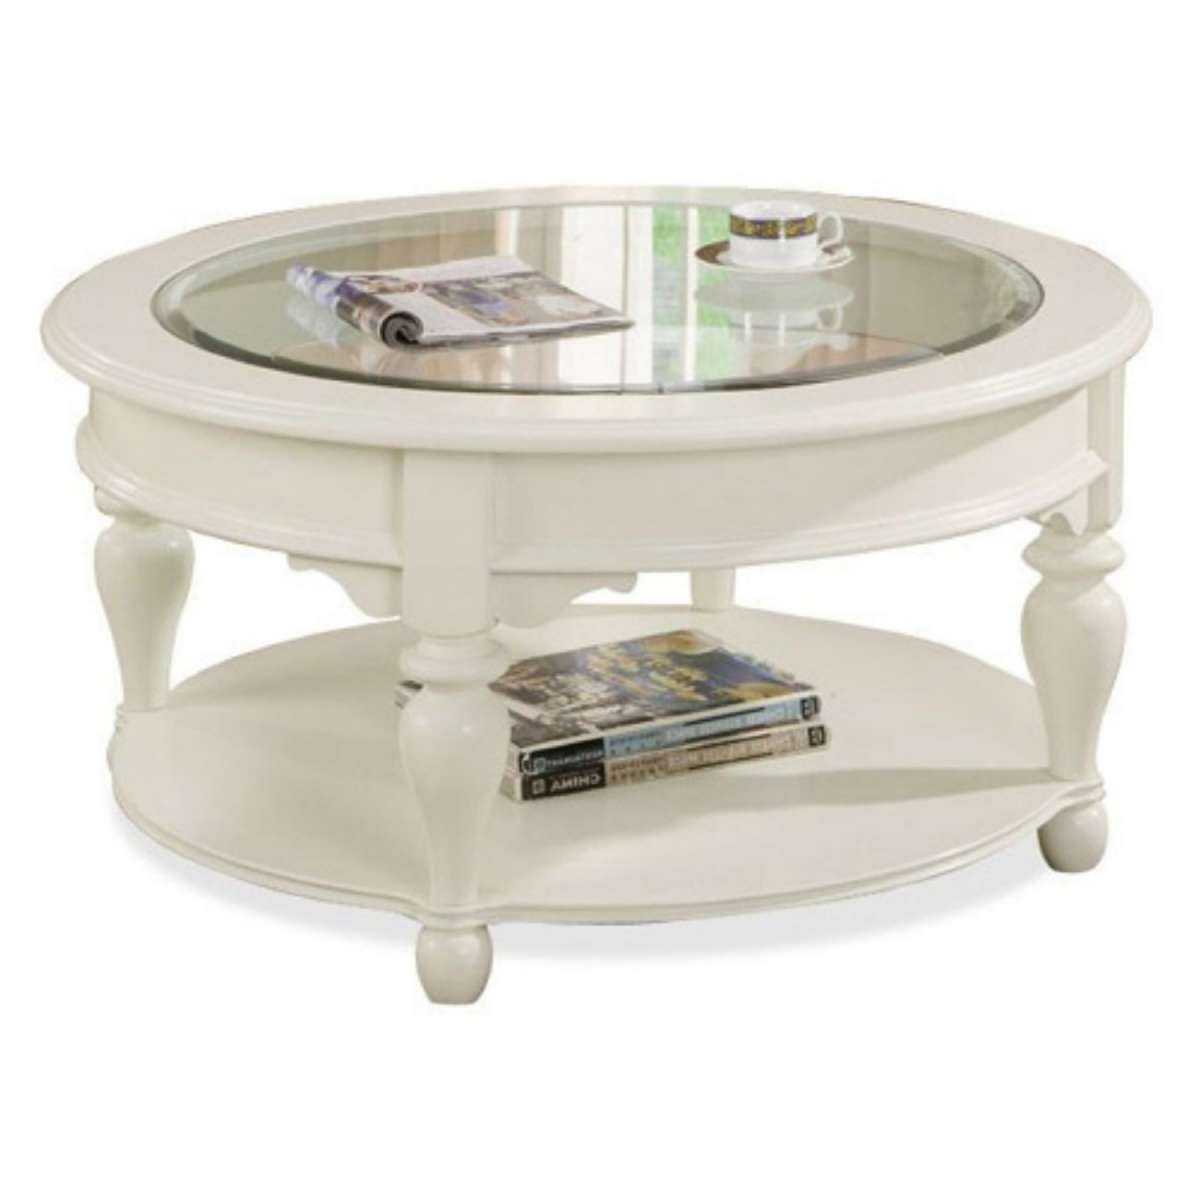 Most Recently Released Round Storage Coffee Tables For The Round Coffee Tables With Storage – The Simple And Compact (View 16 of 20)